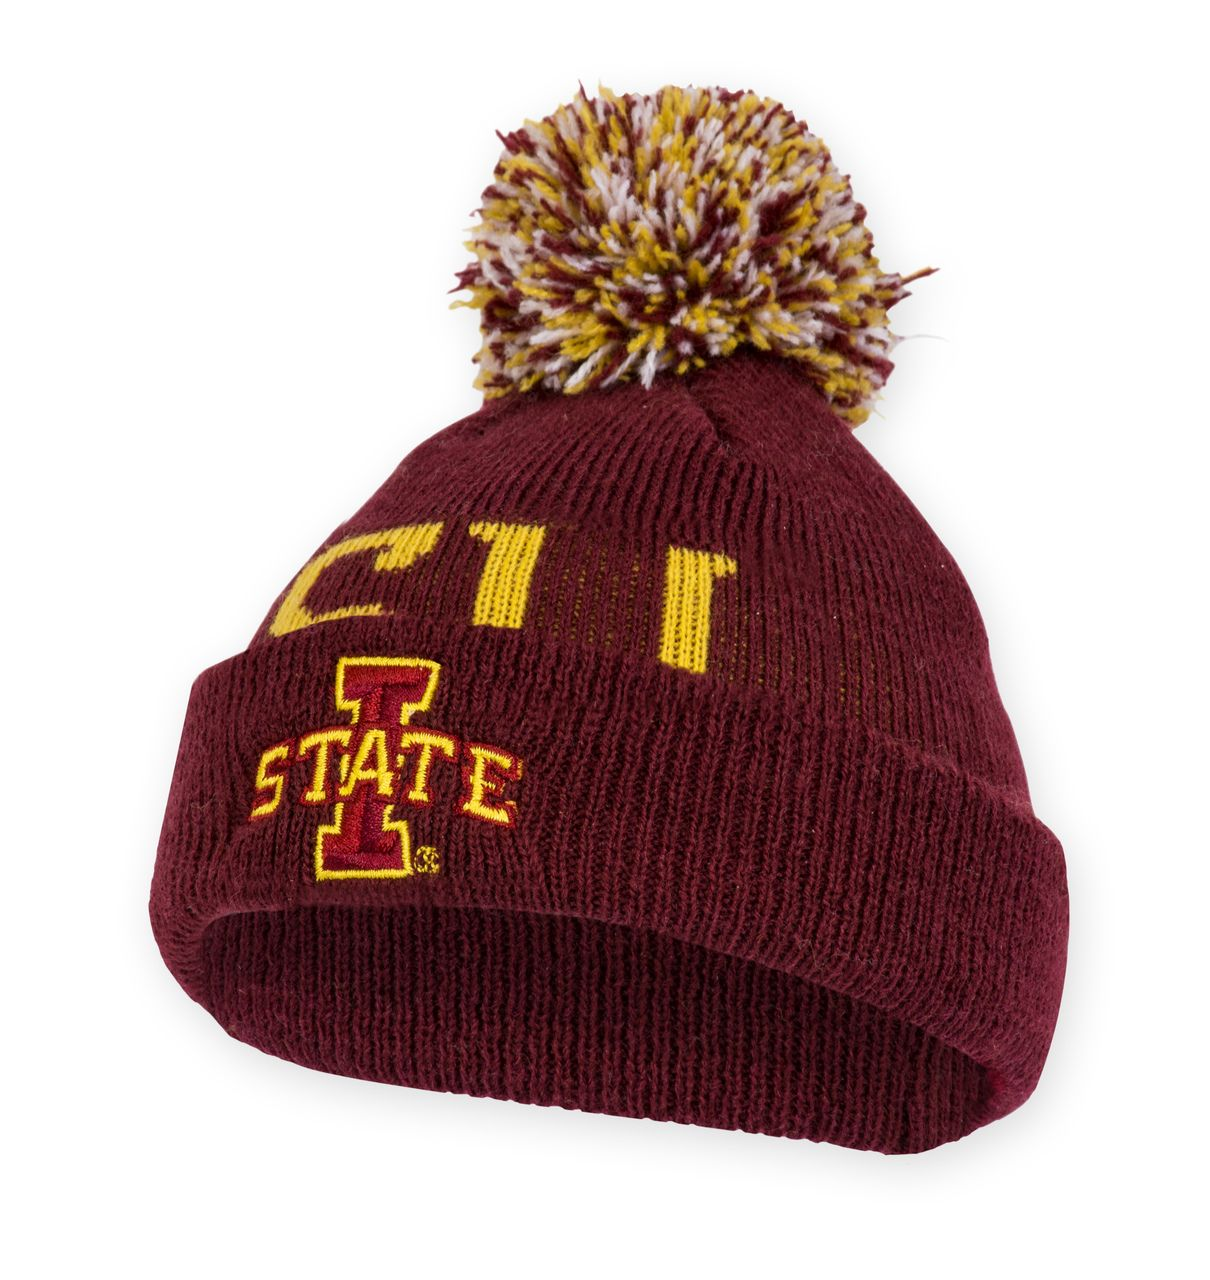 b9ed93eae Kayden Infant Beanie ISU | Iowa State Winter Gear | Beanie, Baby ...